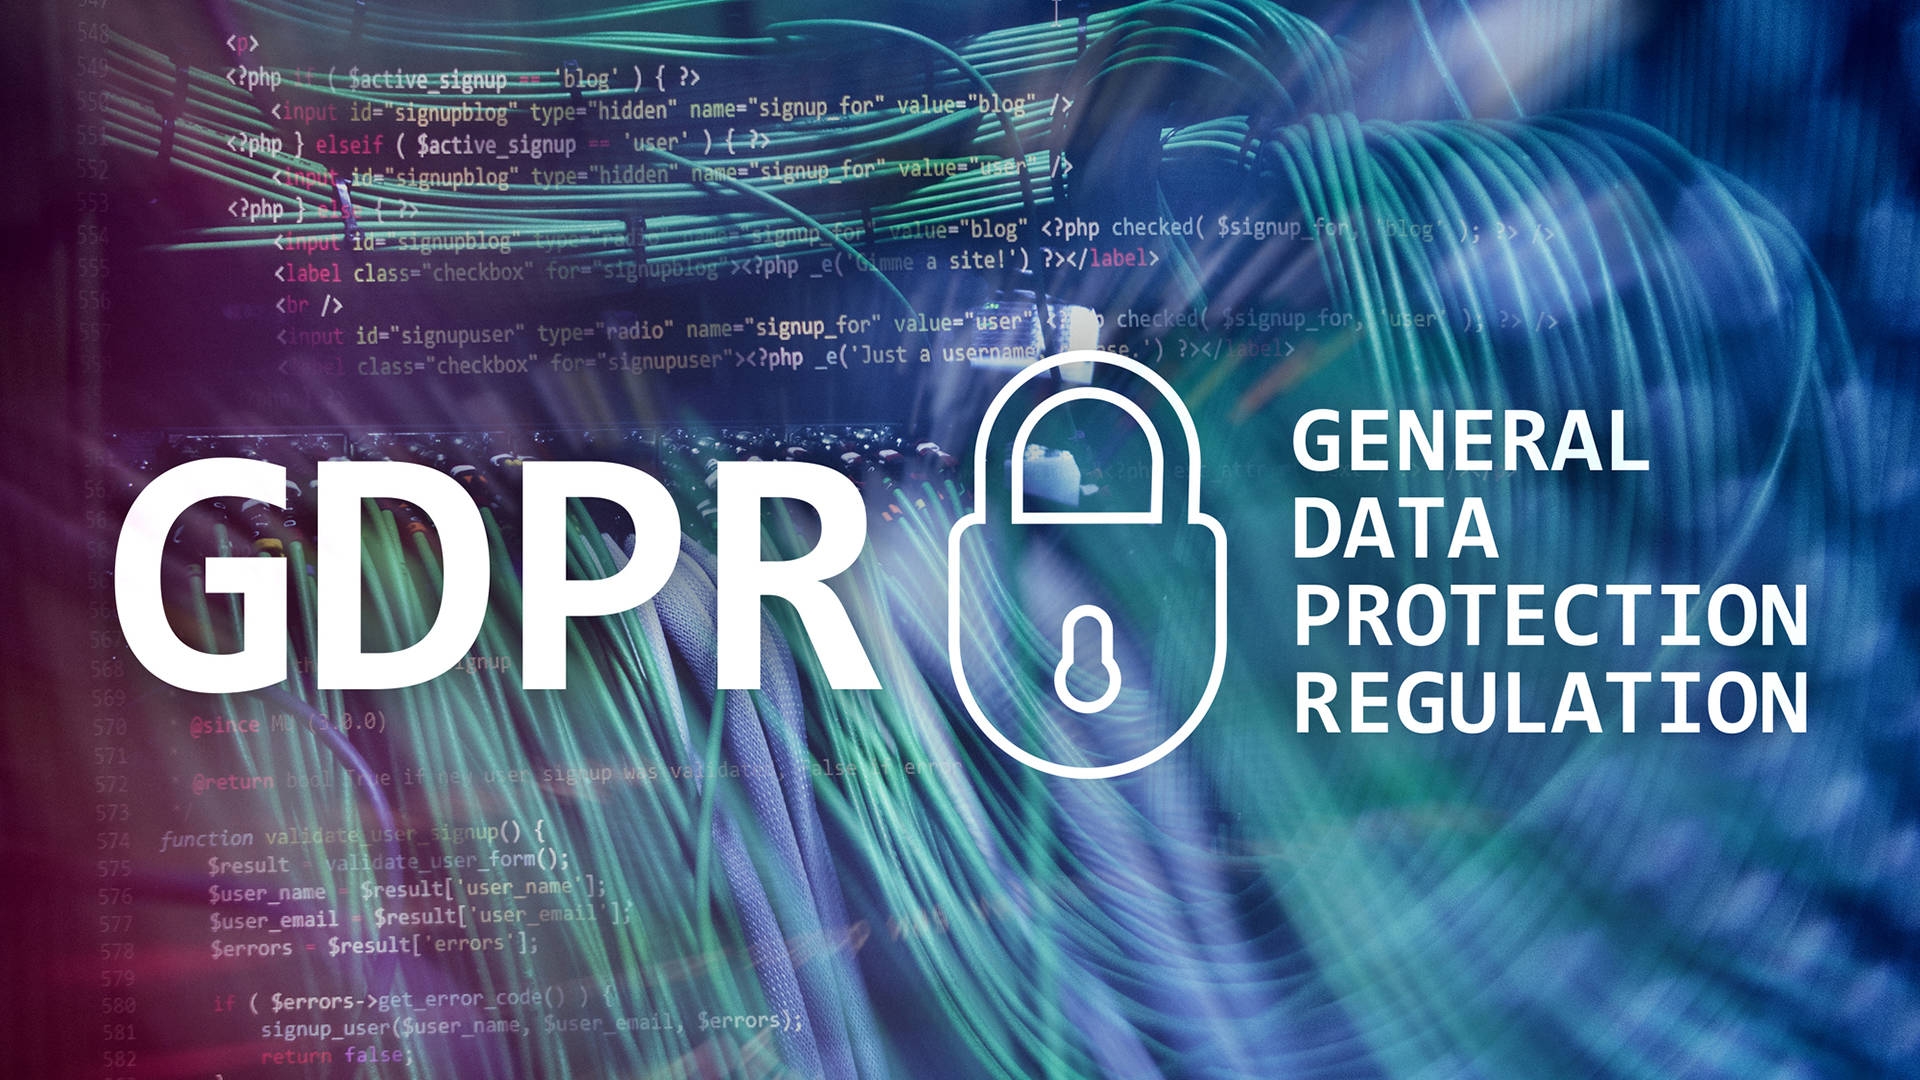 gdpr_cover